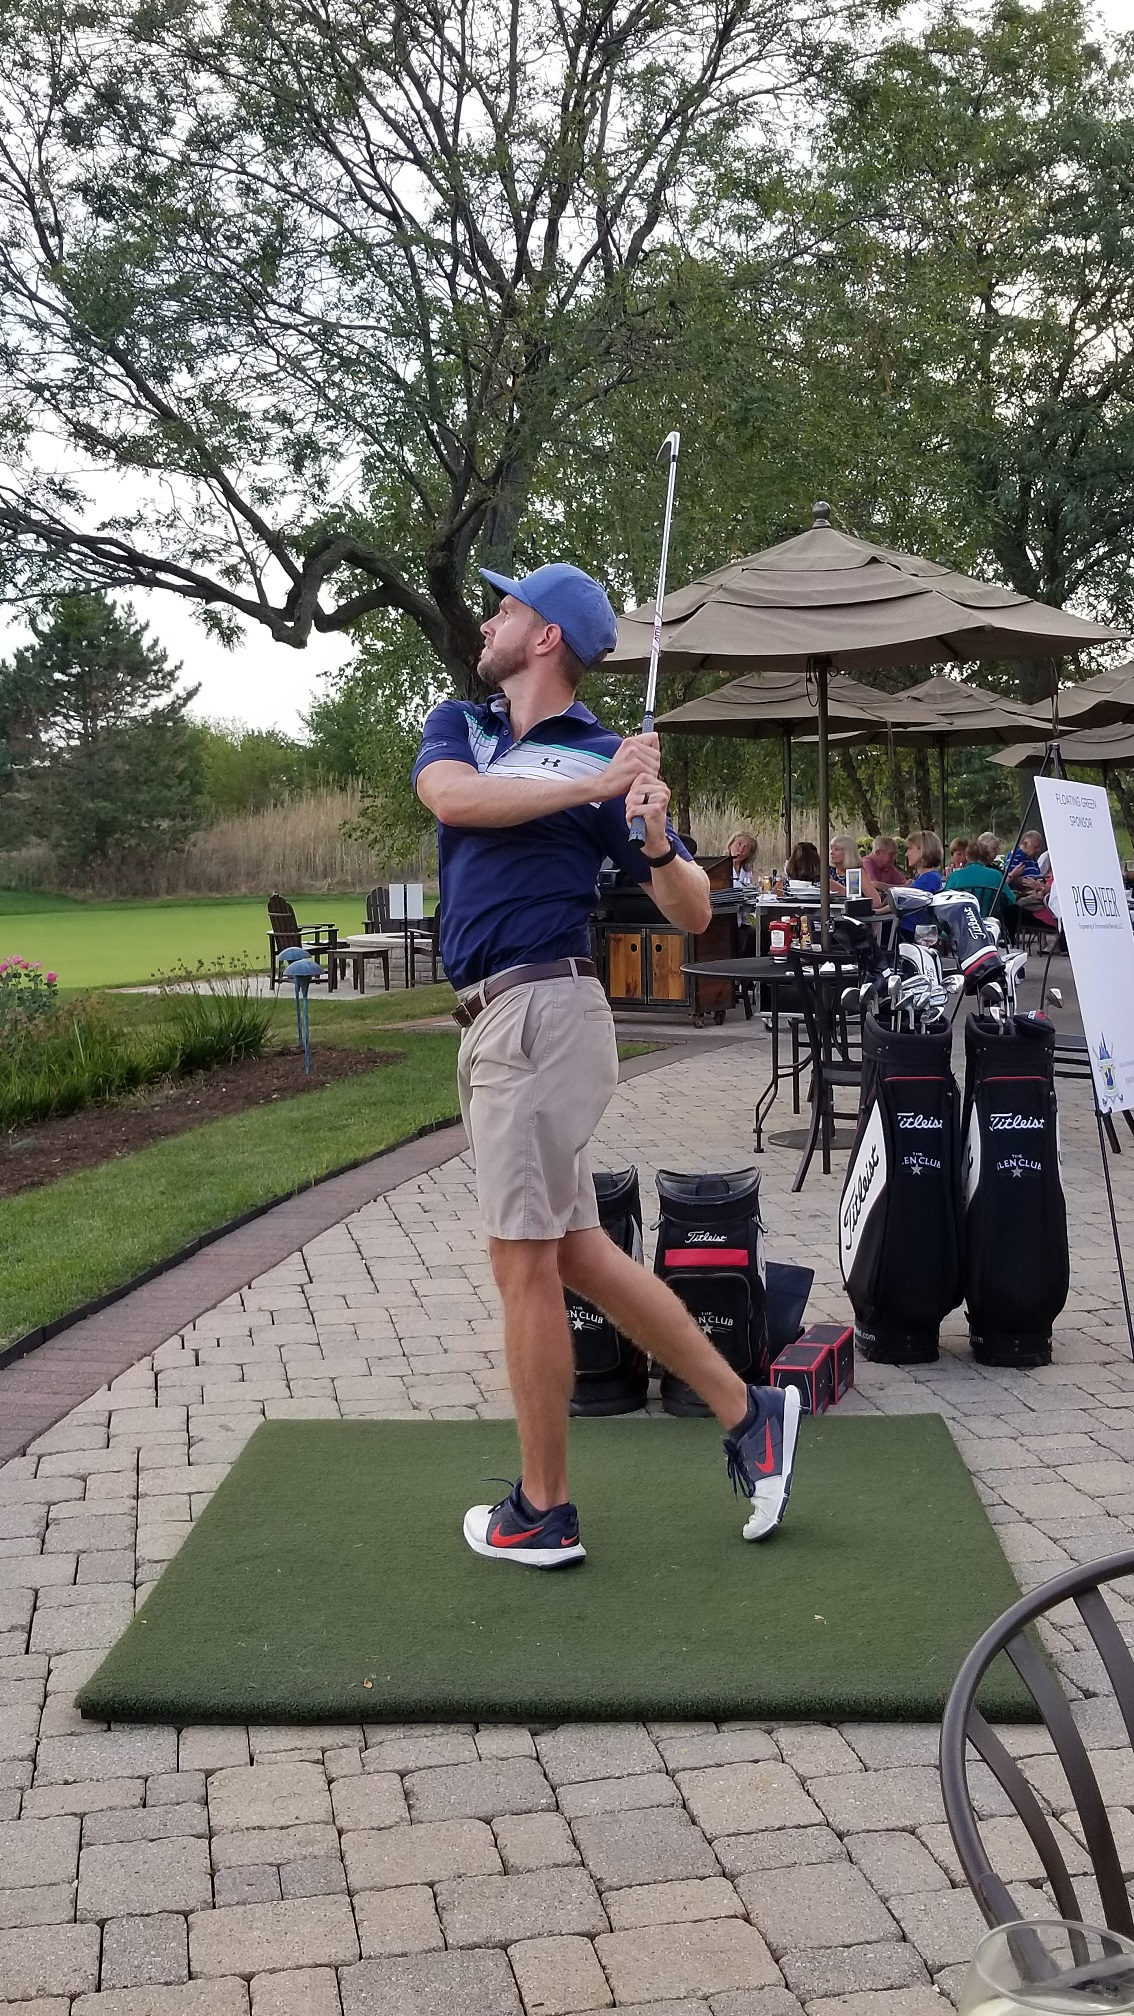 Jeff Gurrister practices his swing during the 4th Annual Real Estate to the Rescue Golf Outing charity tournament, for the Save-A-Pet Foundation.